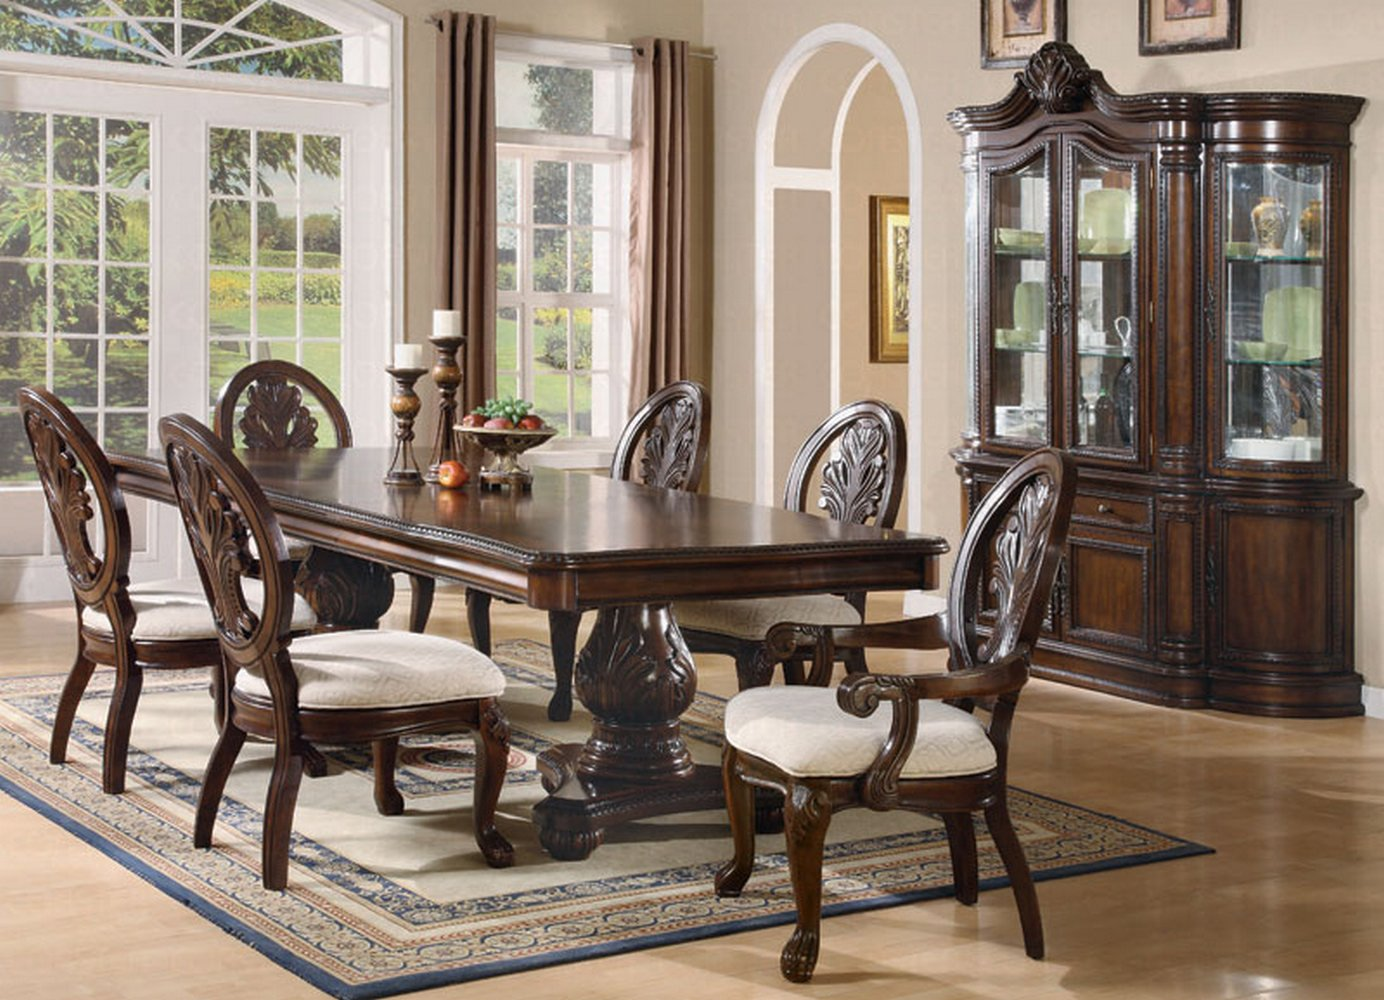 Dining Room Set With China Cabinet Amazoncom Tabitha Formal Dining Set In Rich Cherry Finish